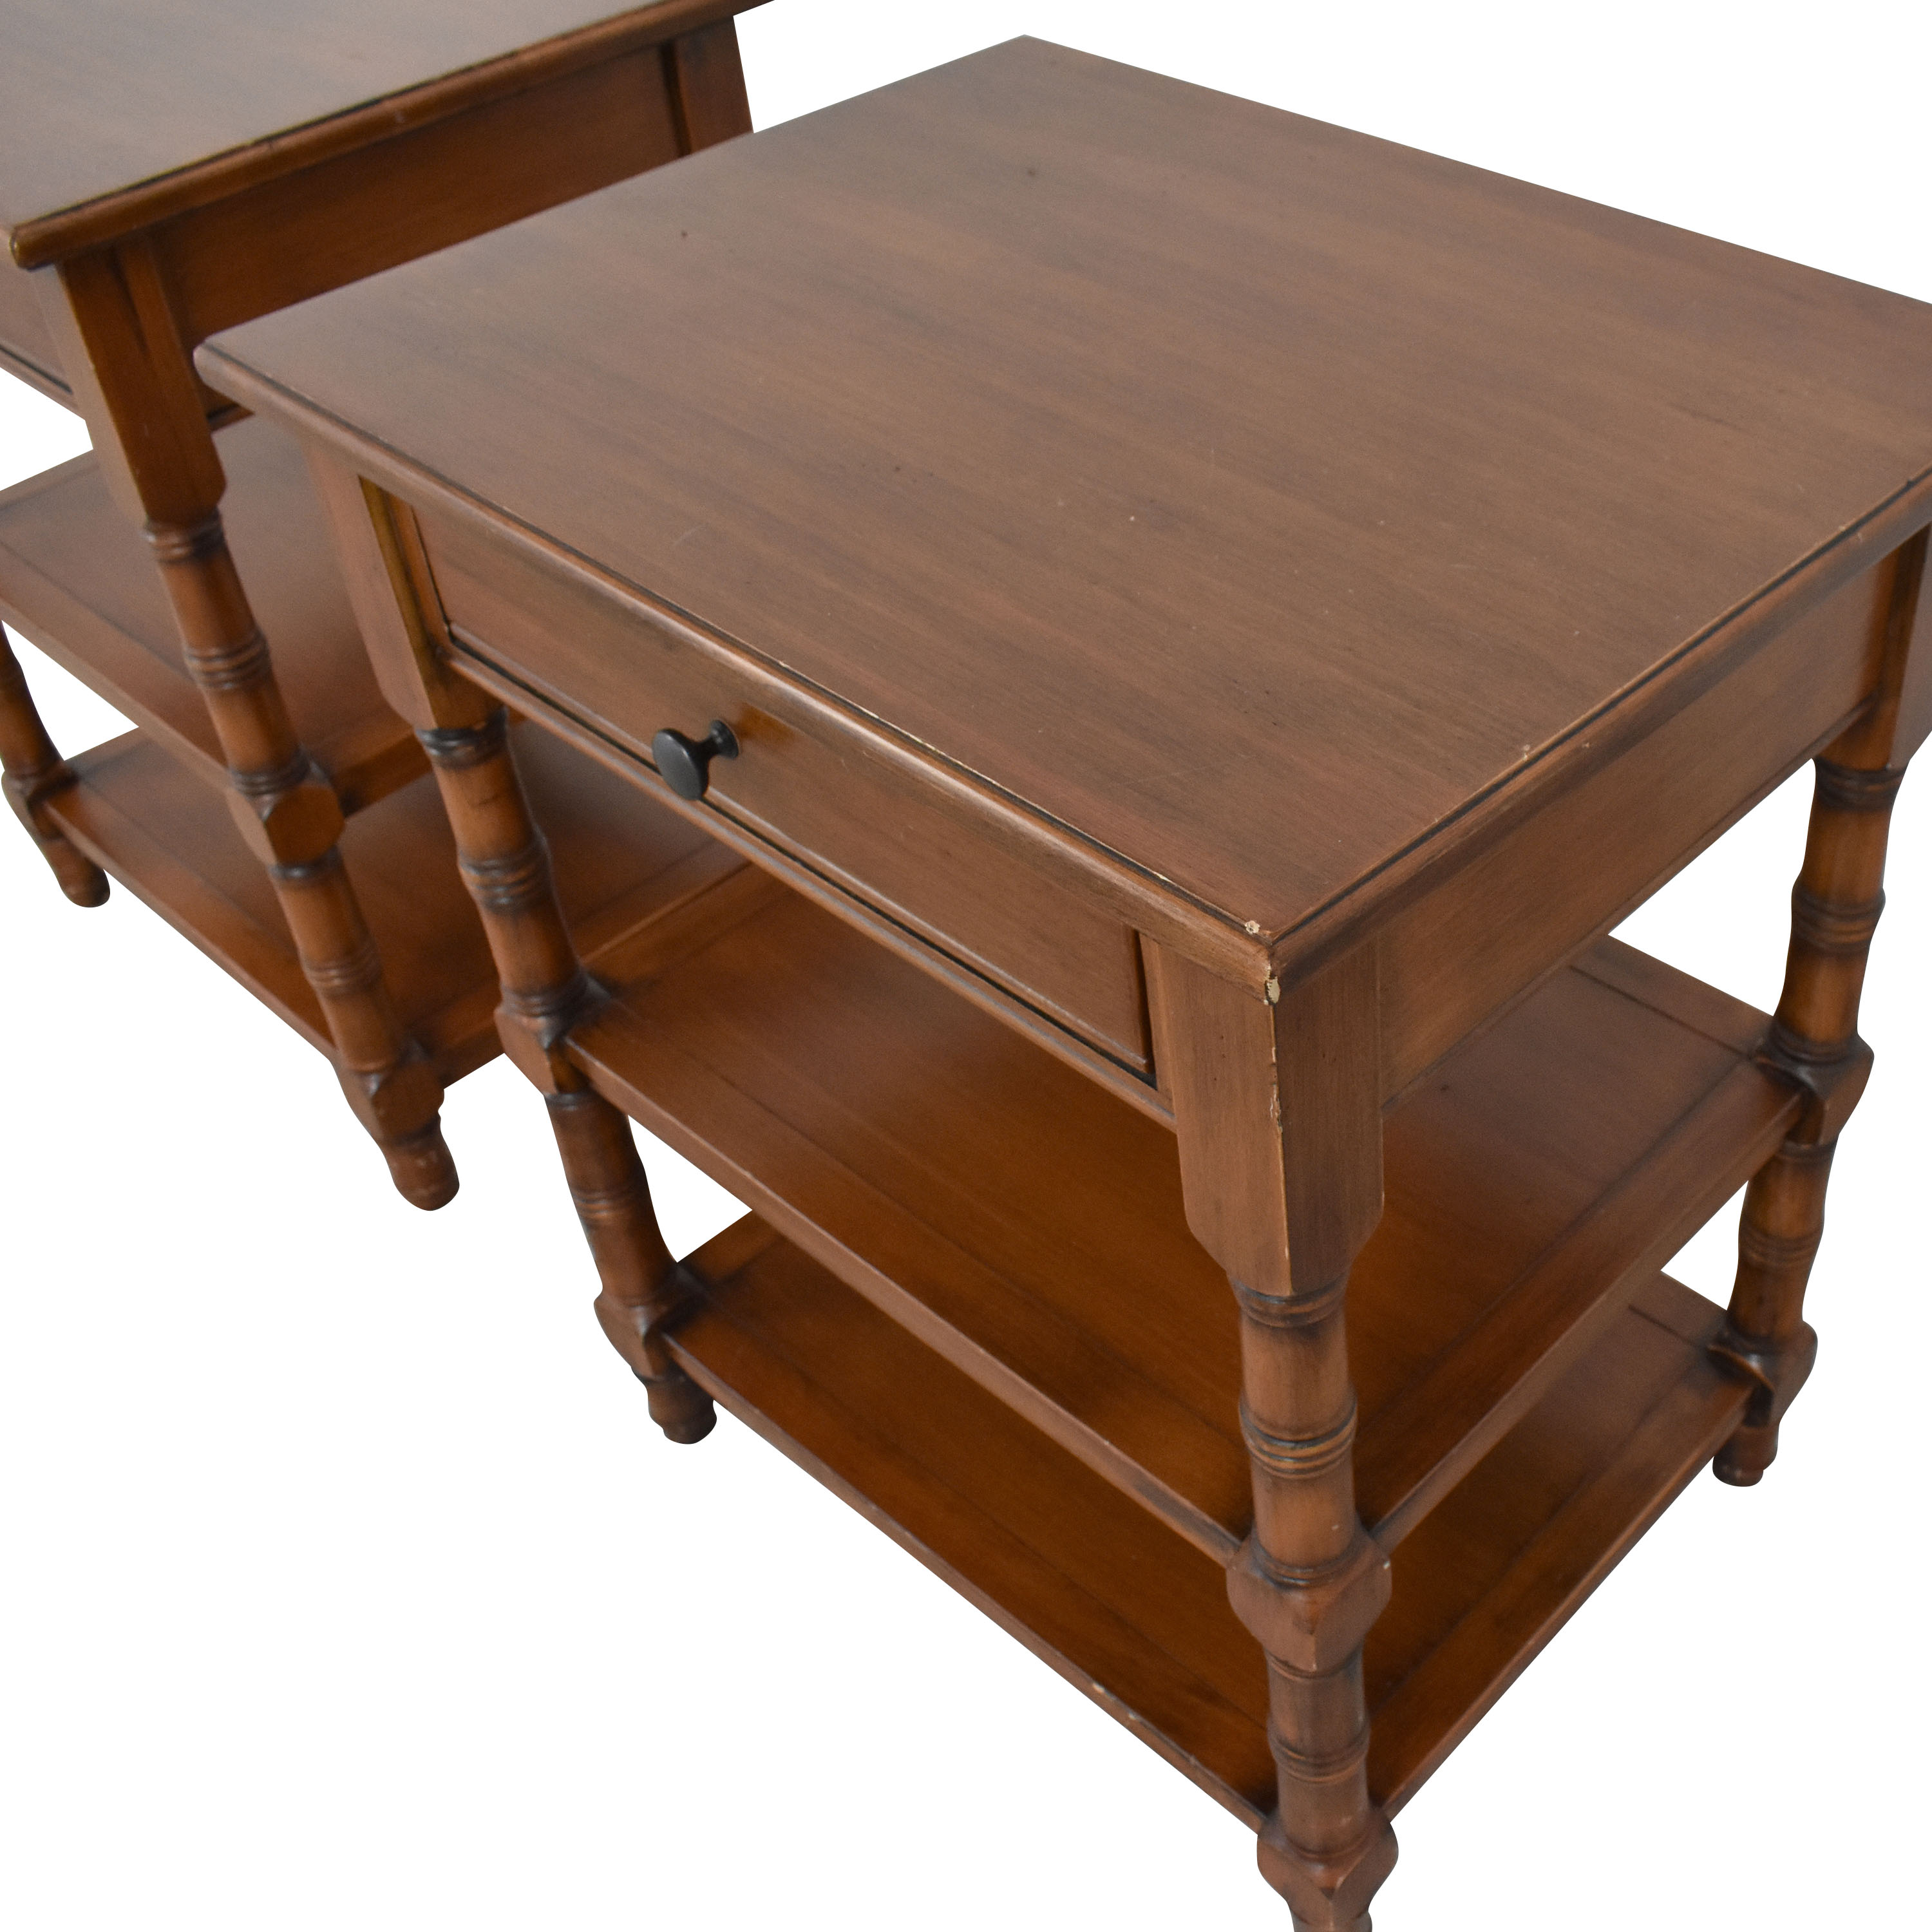 Country Willow Country Willow Nightstands ct